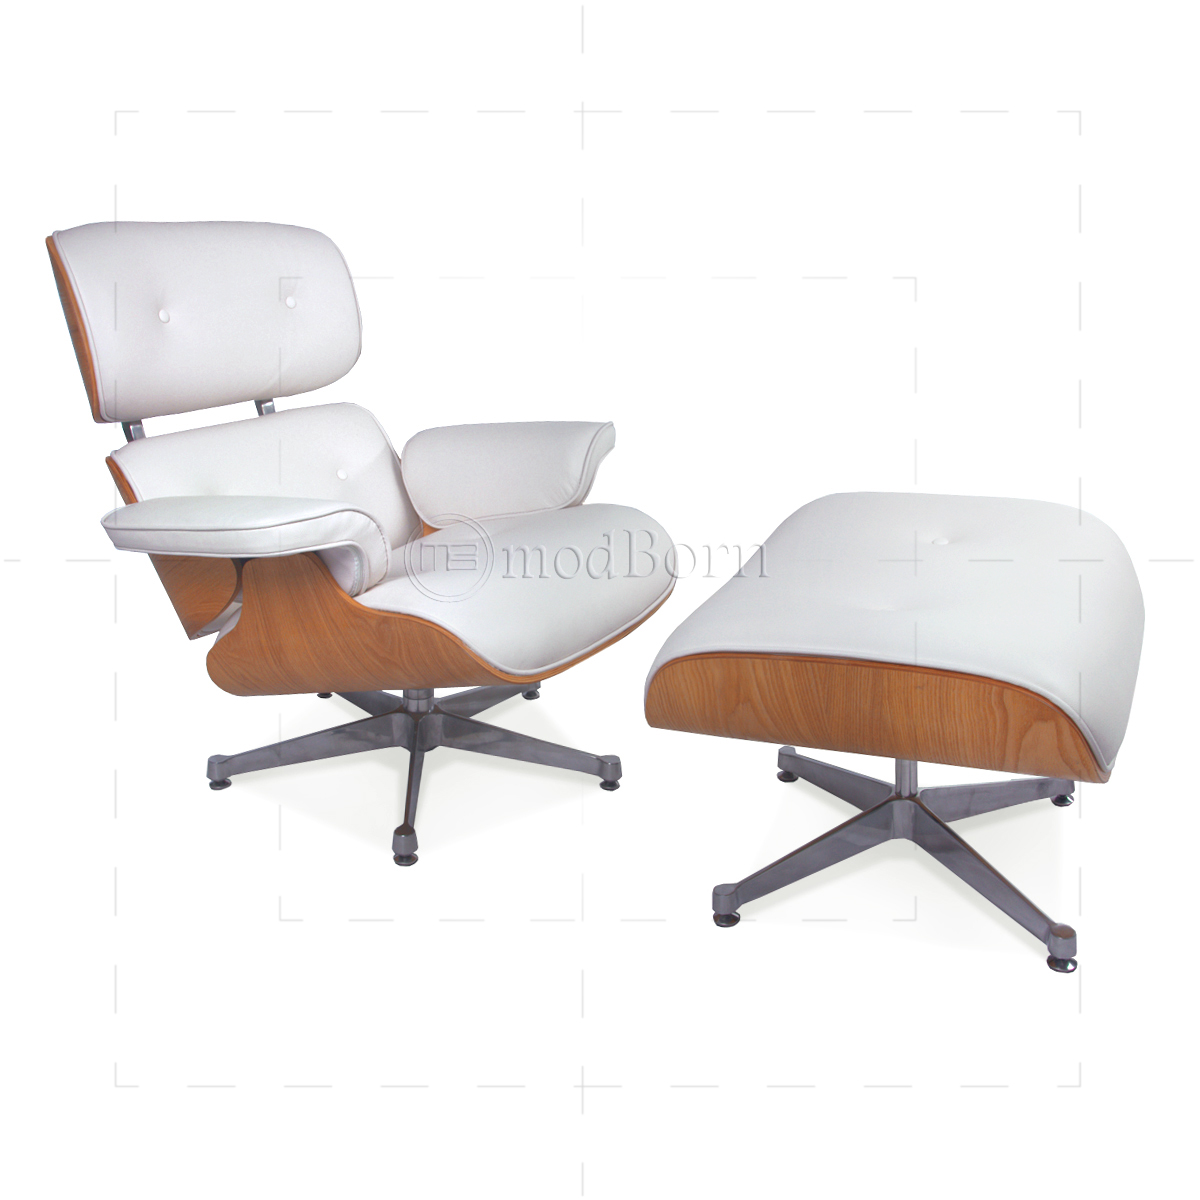 eames style lounge chair and ottoman white leather oak plywood. Black Bedroom Furniture Sets. Home Design Ideas